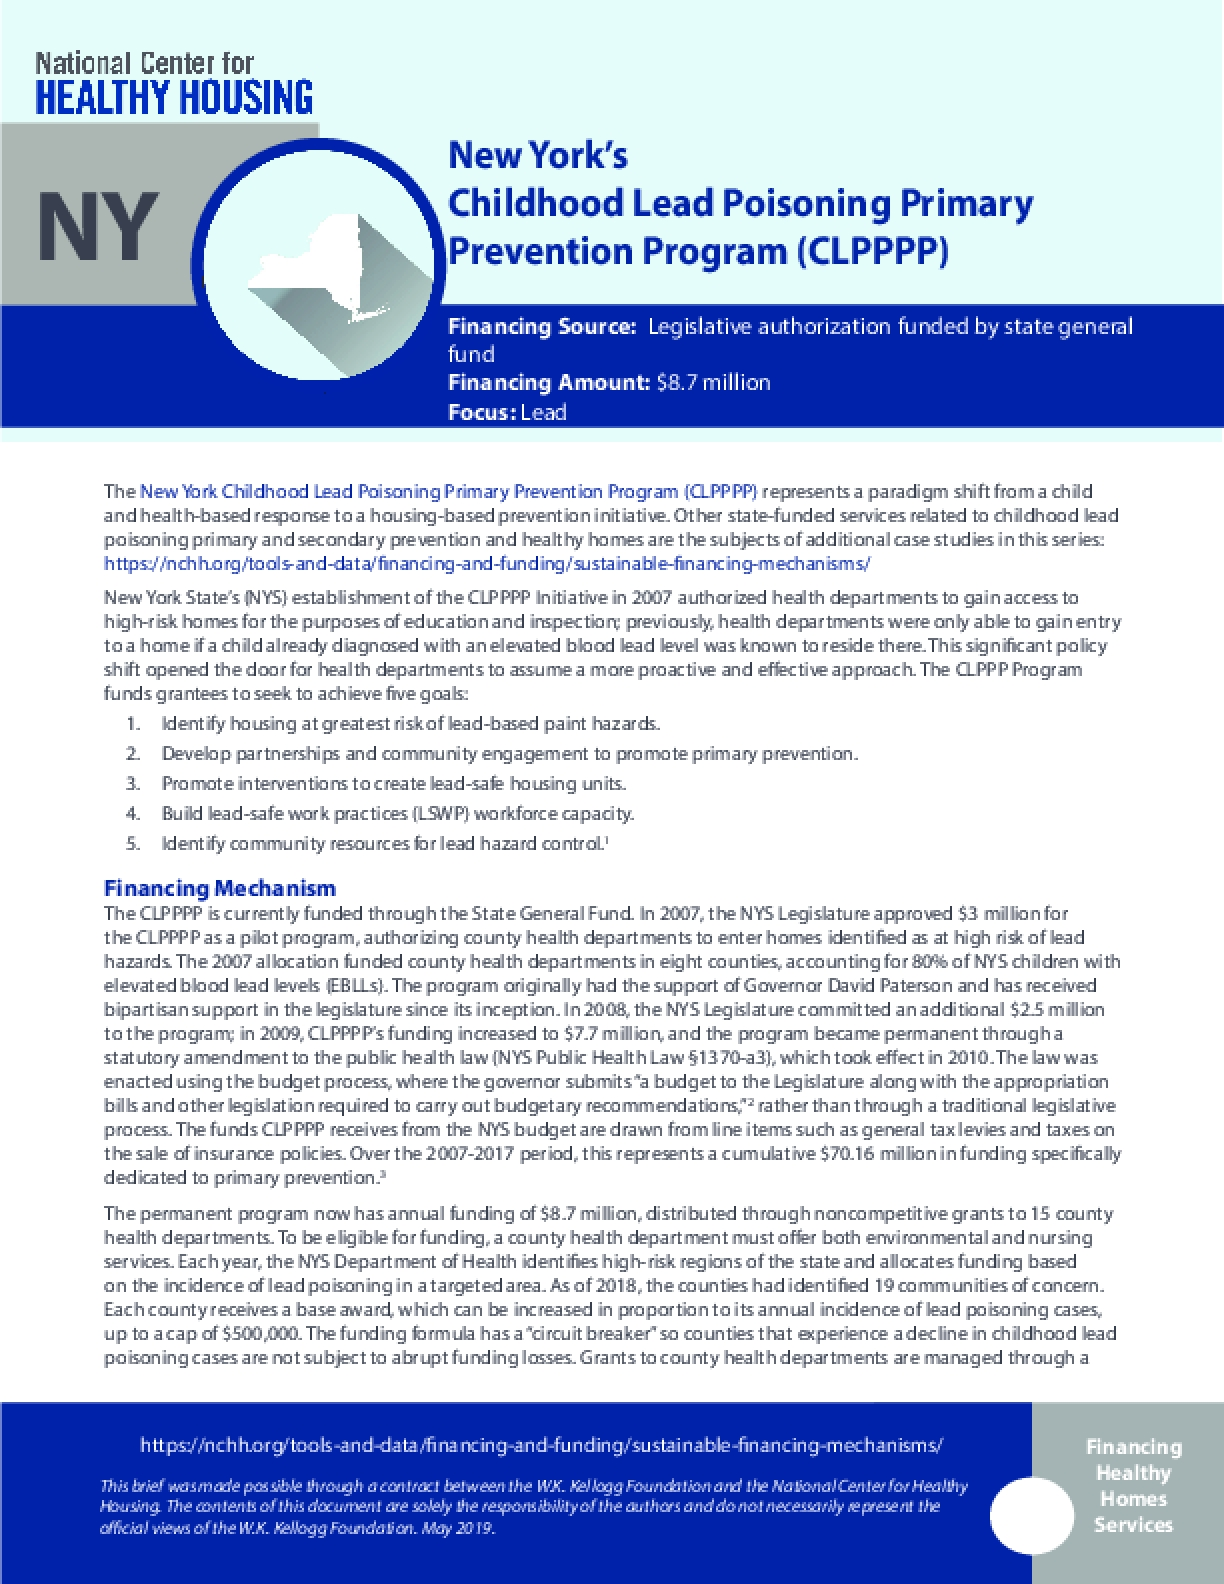 New York's Childhood Lead Poisoning Primary Prevention Program (CLPPPP)